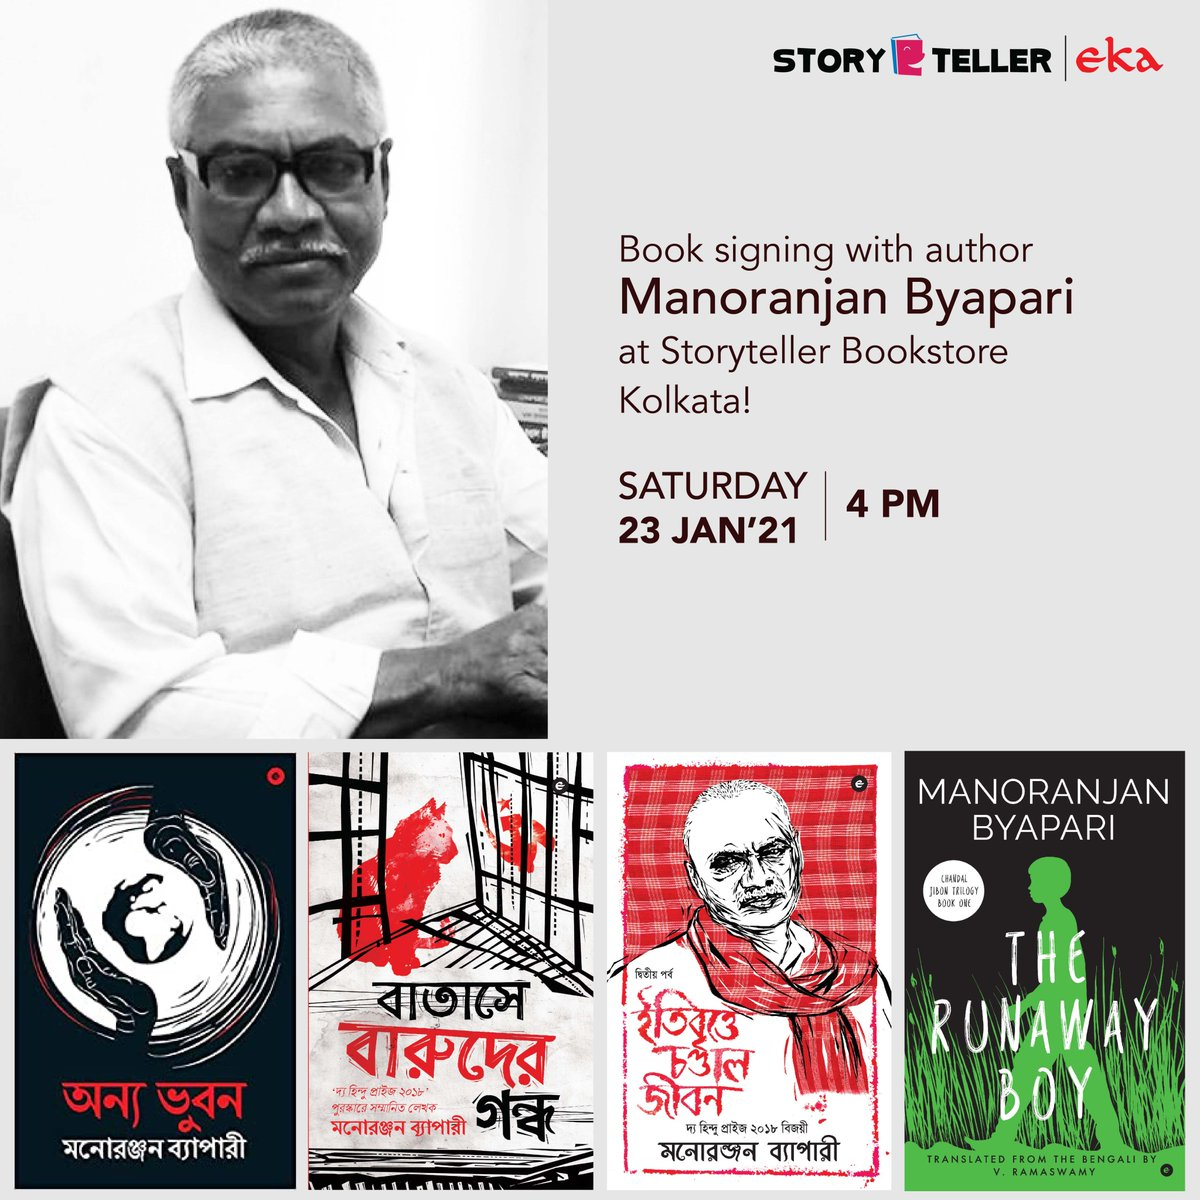 Post the session, he has very graciously agreed to sign copies of his @EkaWestland books. Social distancing norms will be observed. Please wear a mask. RSVP on 9331051191/8910896319.   The @HydLitFest session will be streamed live at the following link -